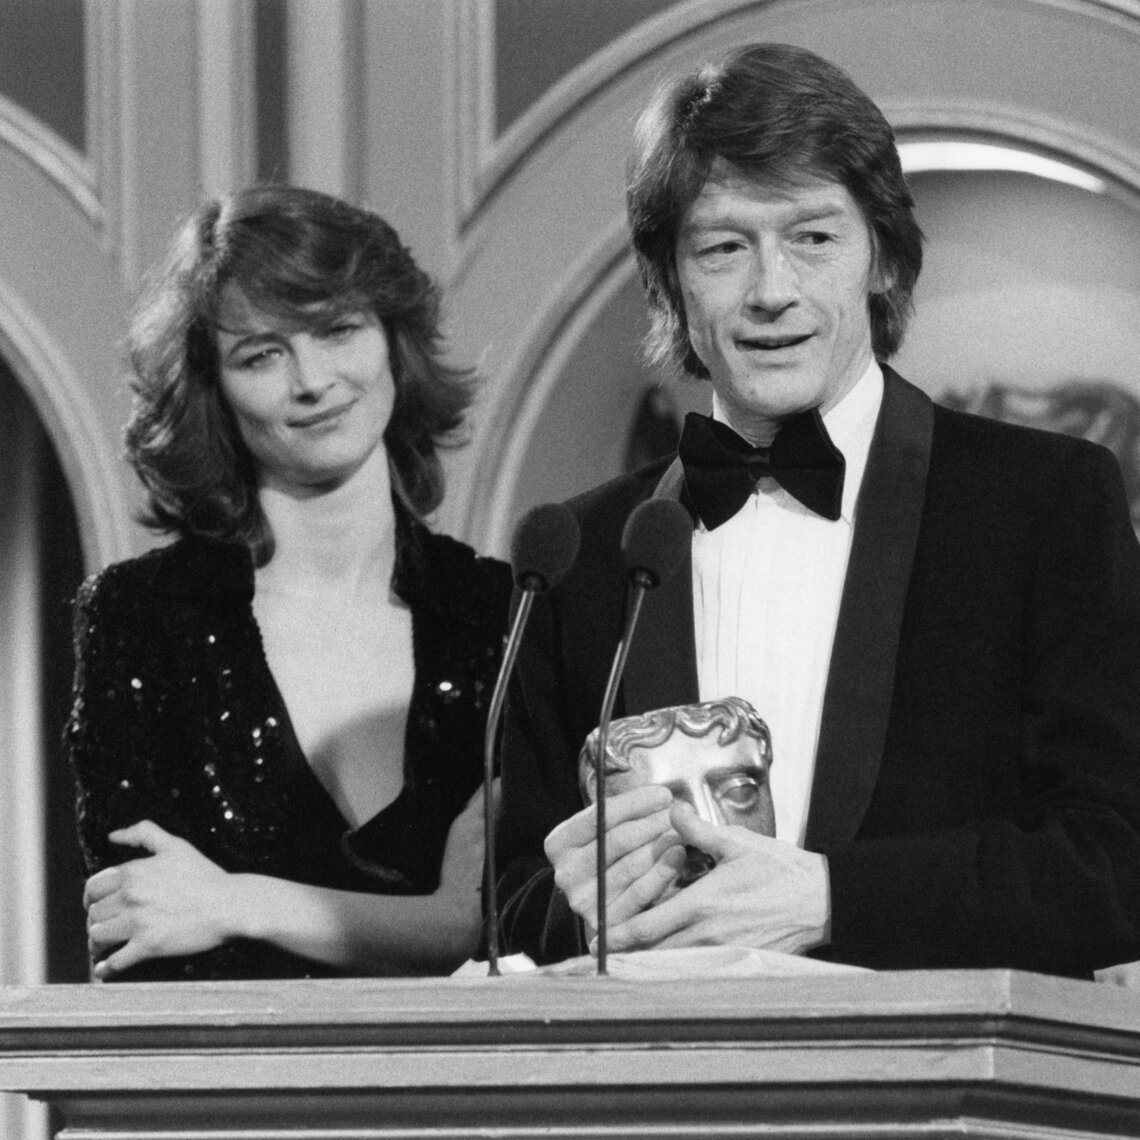 The BRITISH ACADEMY of FILM and TELEVISION ARTS AWARDS 1981